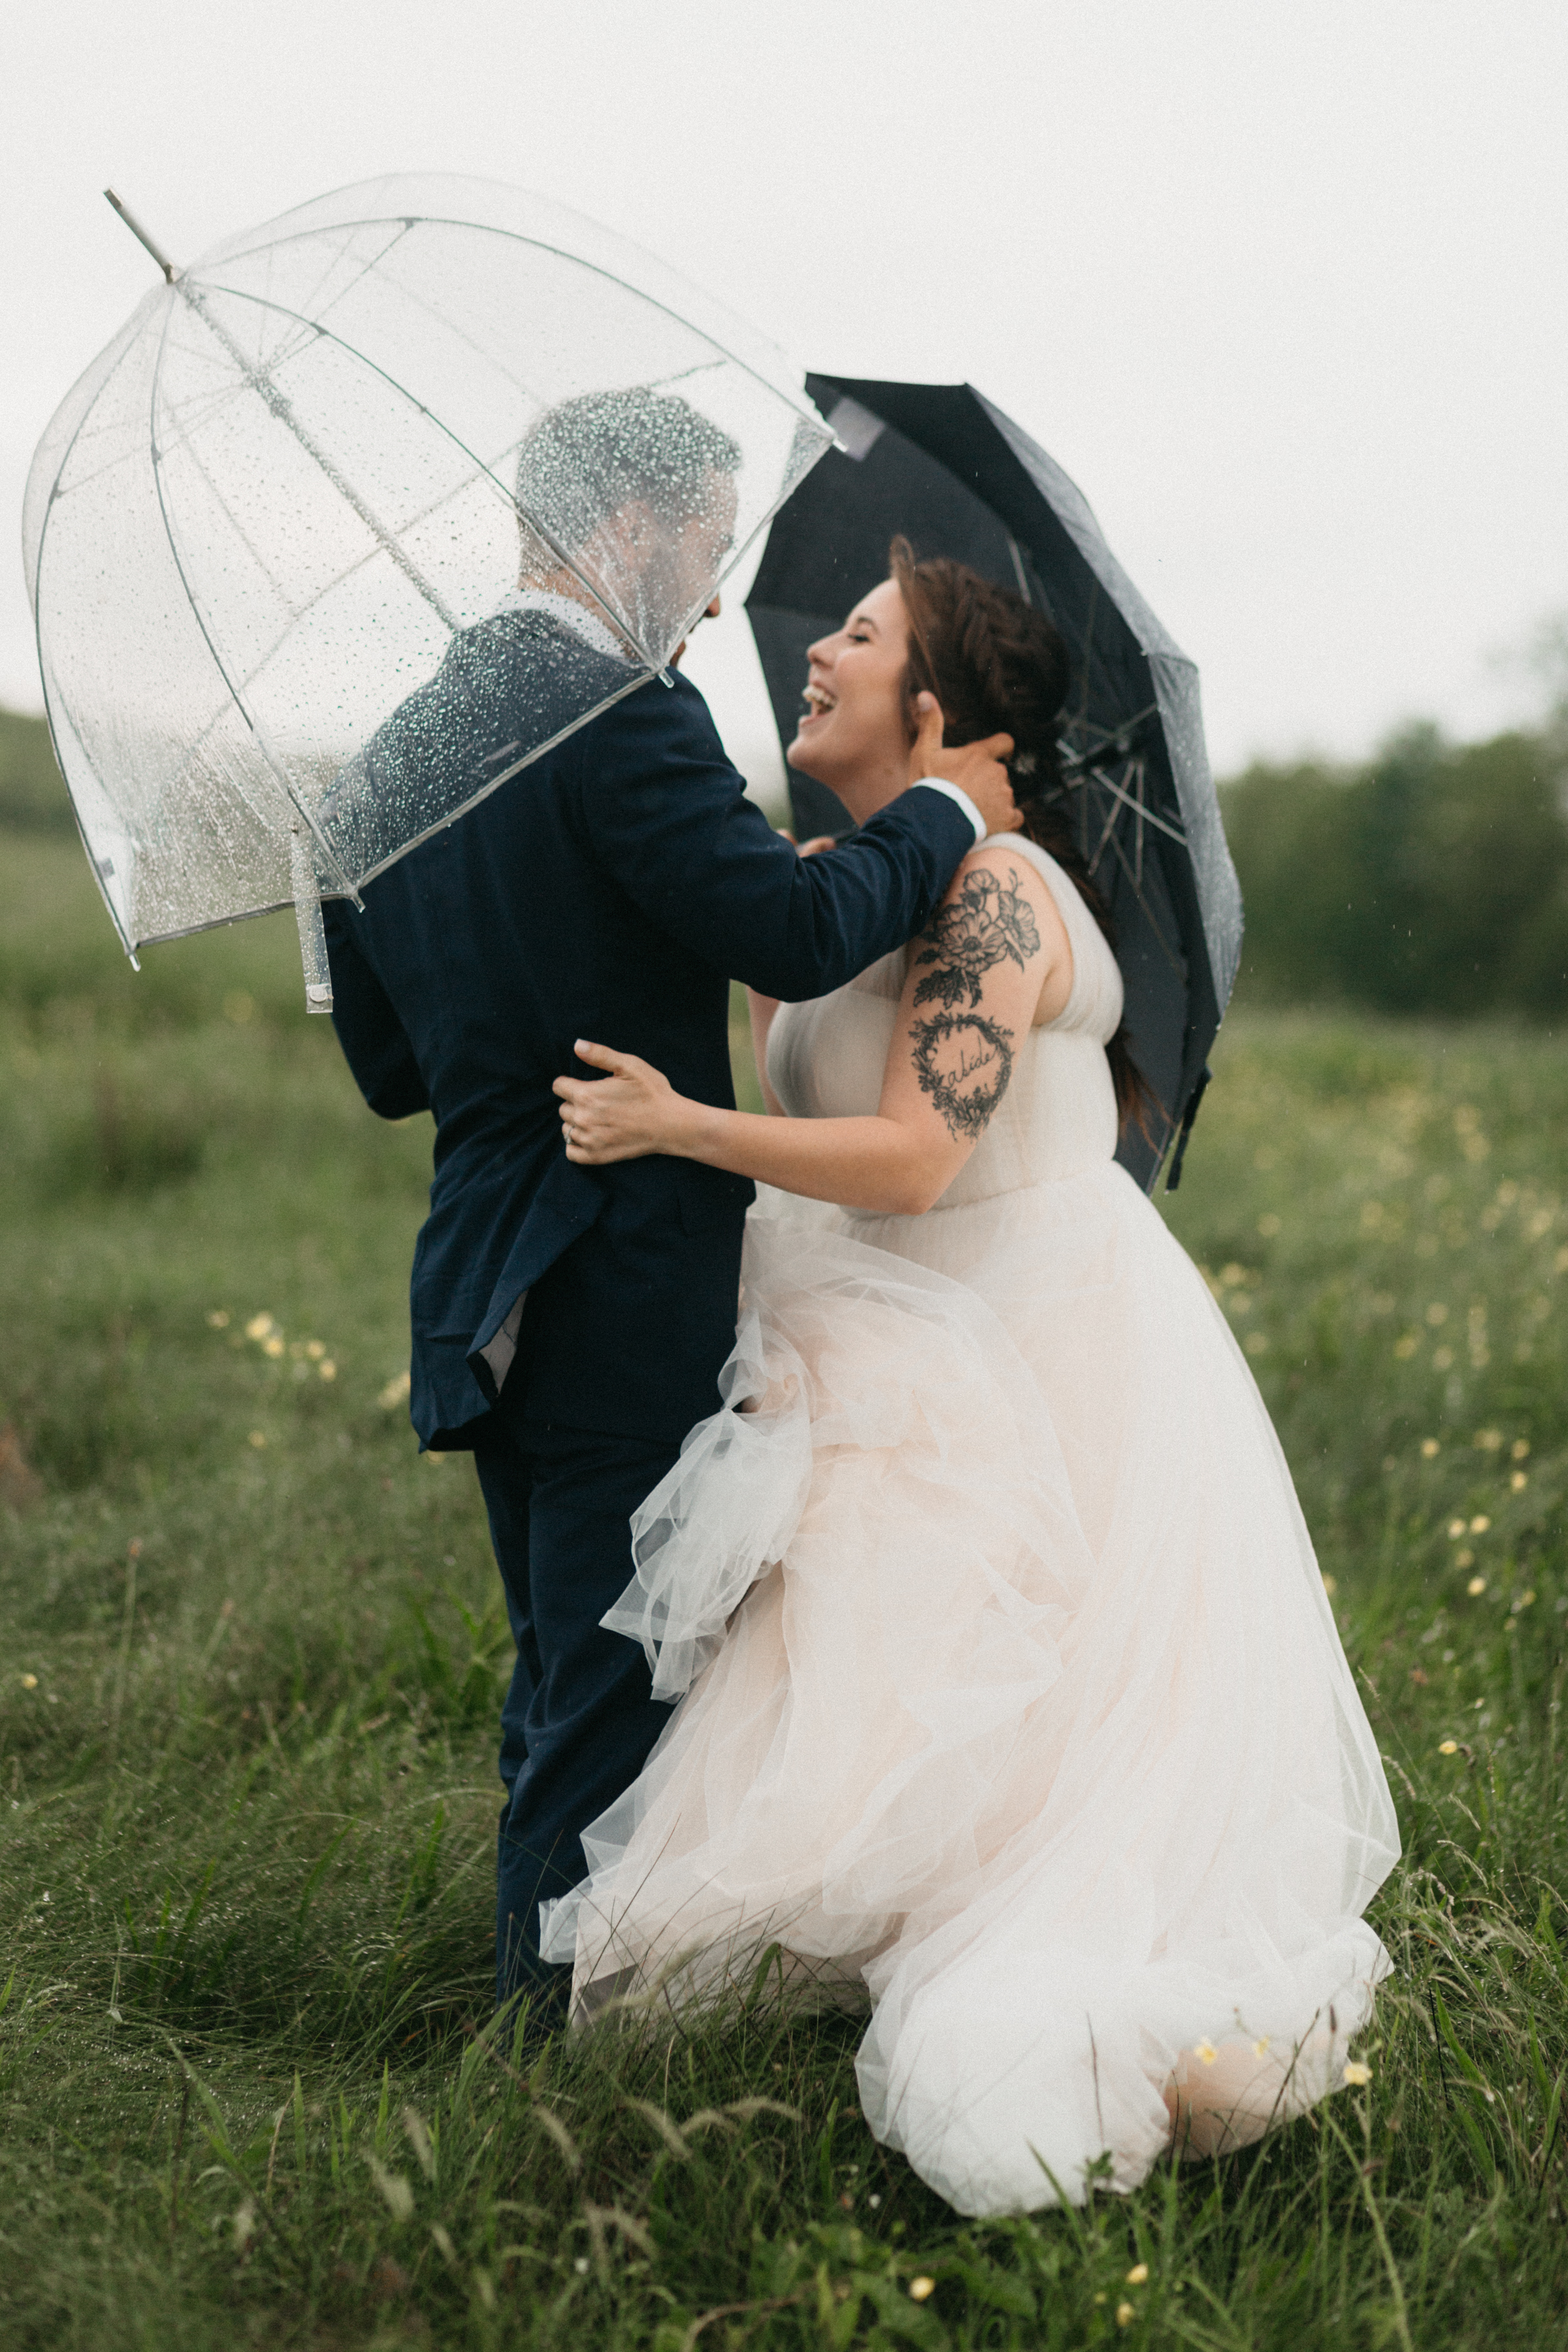 Rainy day couple shares a first look before their ceremony at Max Patch.